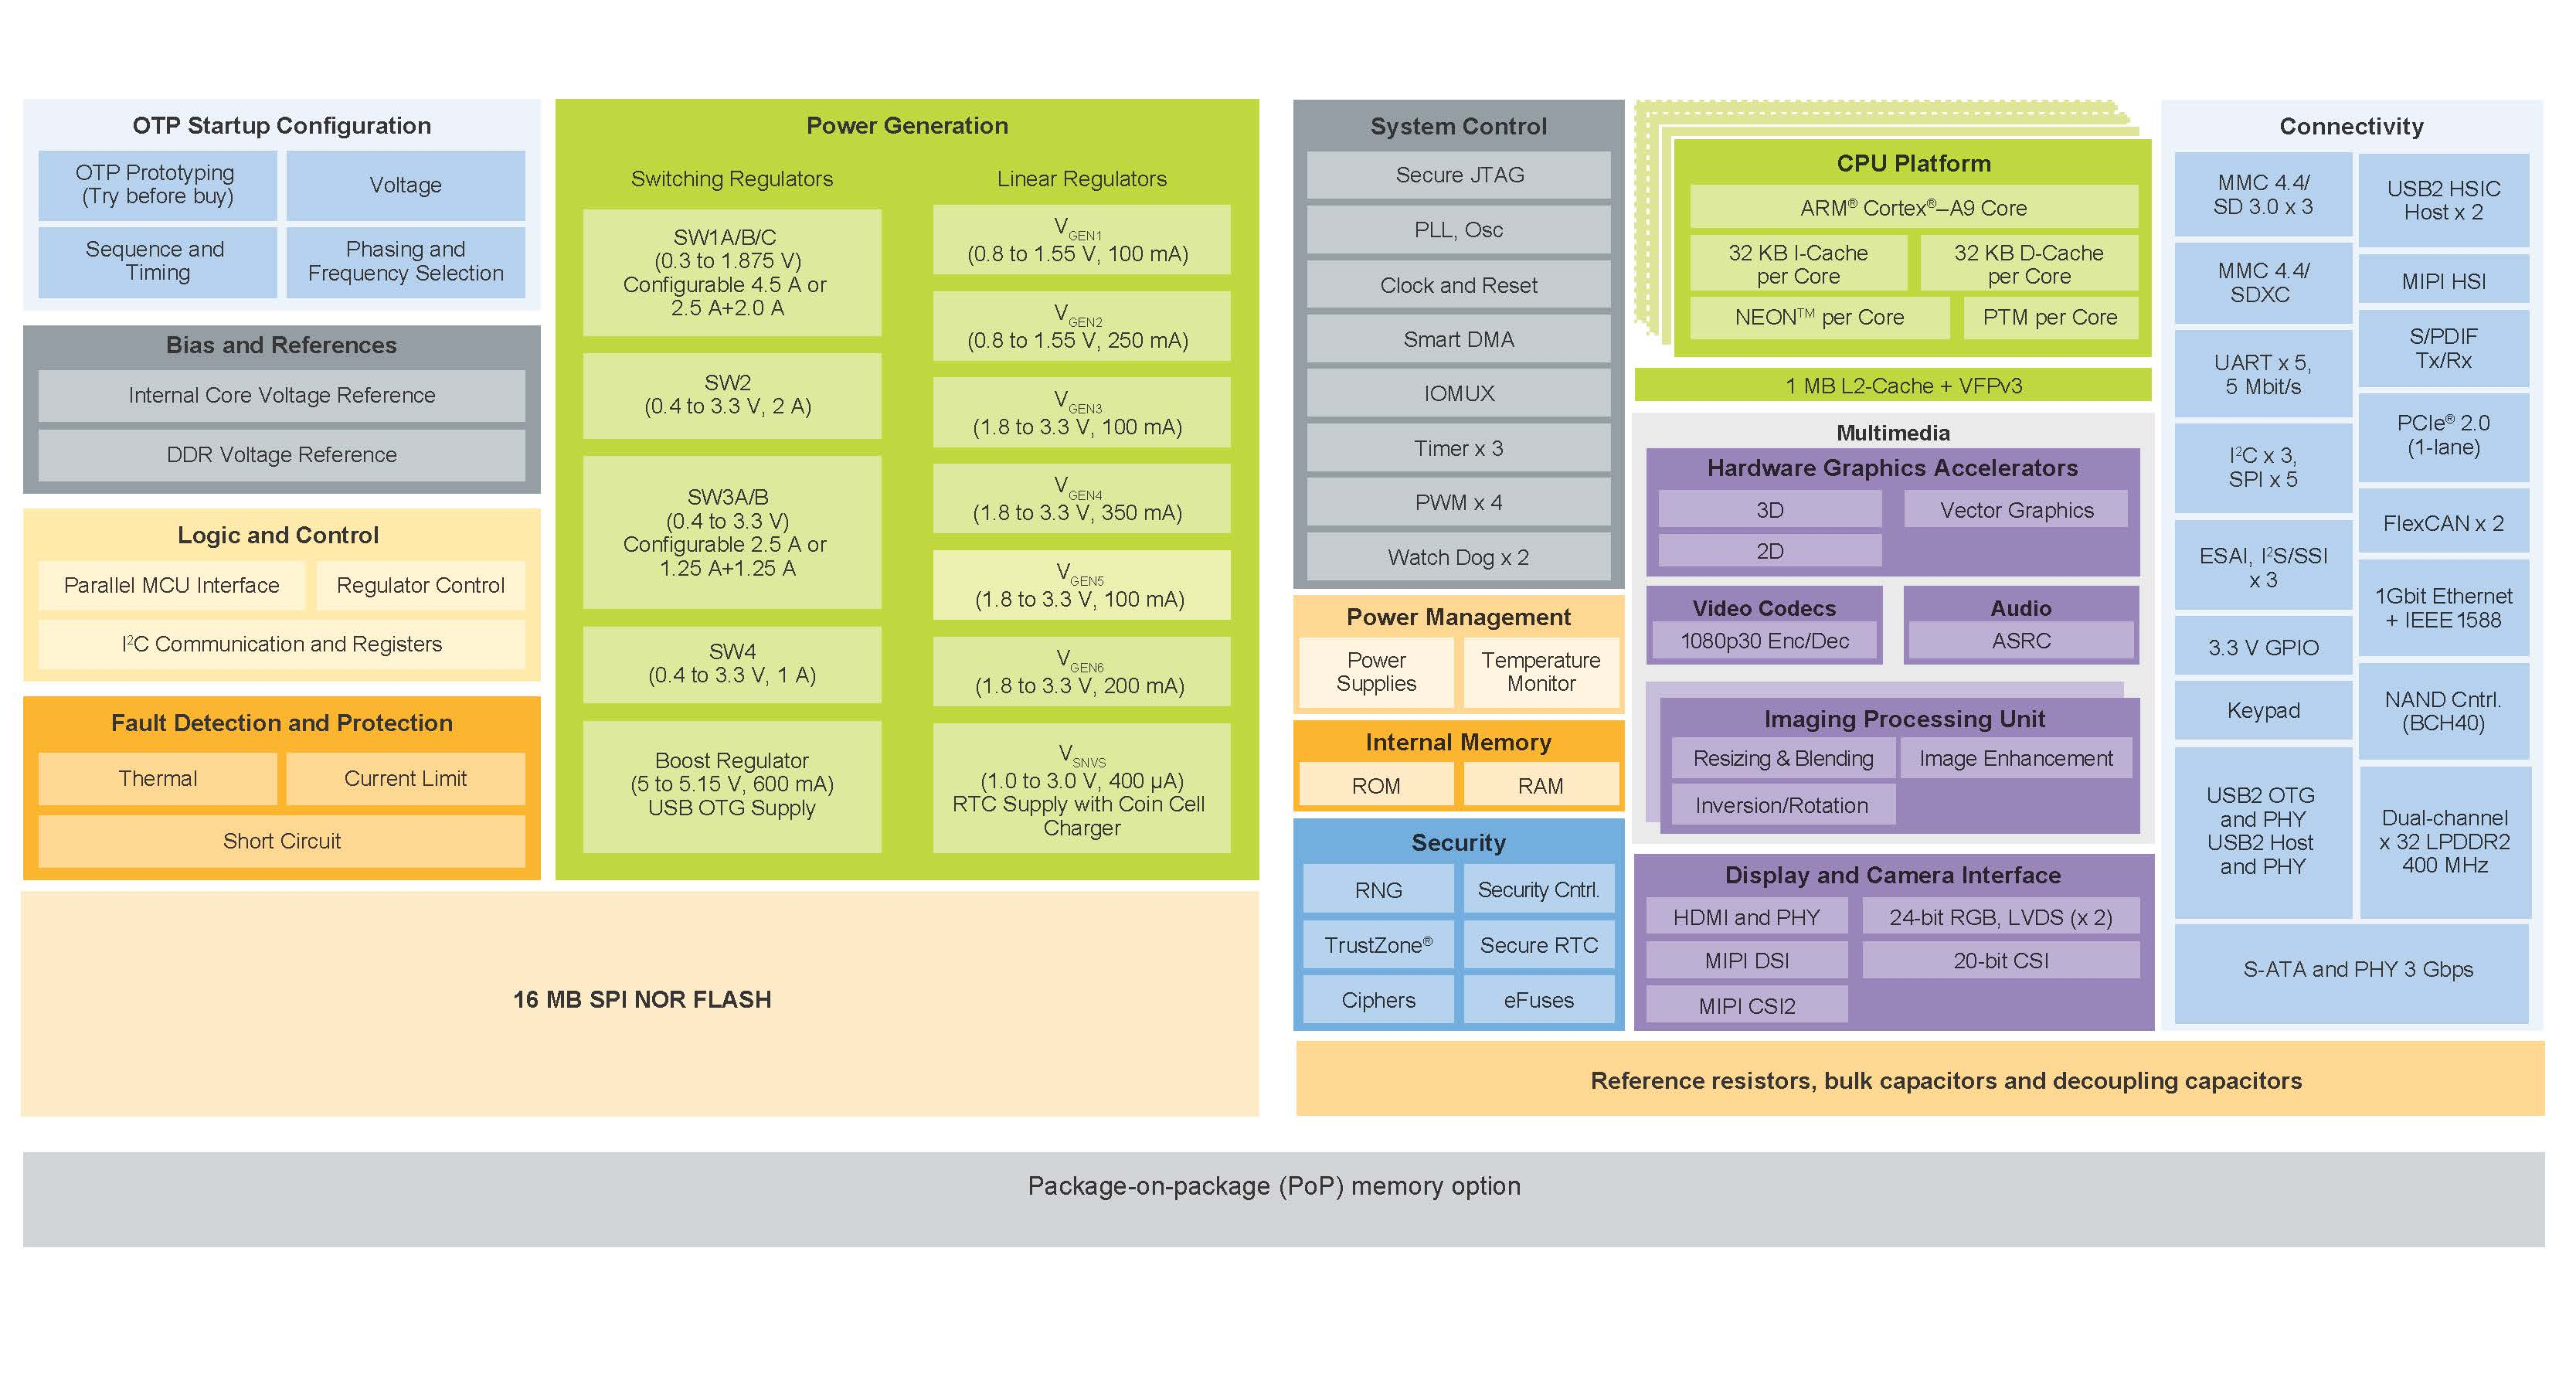 Single Chip Module Imx 6d Nxp Block Diagram Of The Human Computer Interface System Mx 6dual